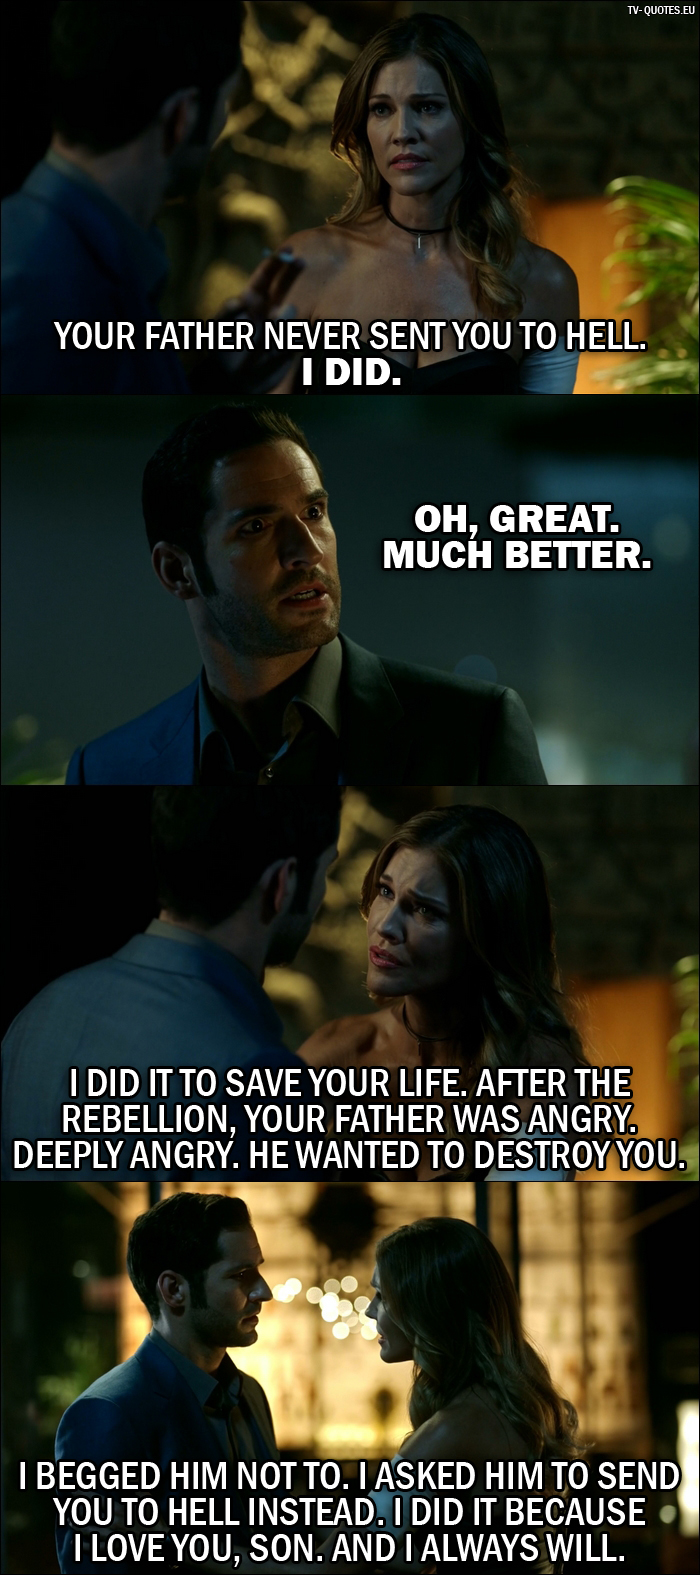 18 Best Lucifer Quotes from Liar, Liar, Slutty Dress on Fire (2x02) - Lucifer's Mother: Your father never sent you to Hell. I did. - Lucifer Morningstar: Oh, great. Much better. - Lucifer's Mother: I did it to save your life. After the rebellion, your father was angry. Deeply angry. He wanted to destroy you. I begged him not to. I asked him to send you to Hell instead. I did it because I love you, son. And I always will.